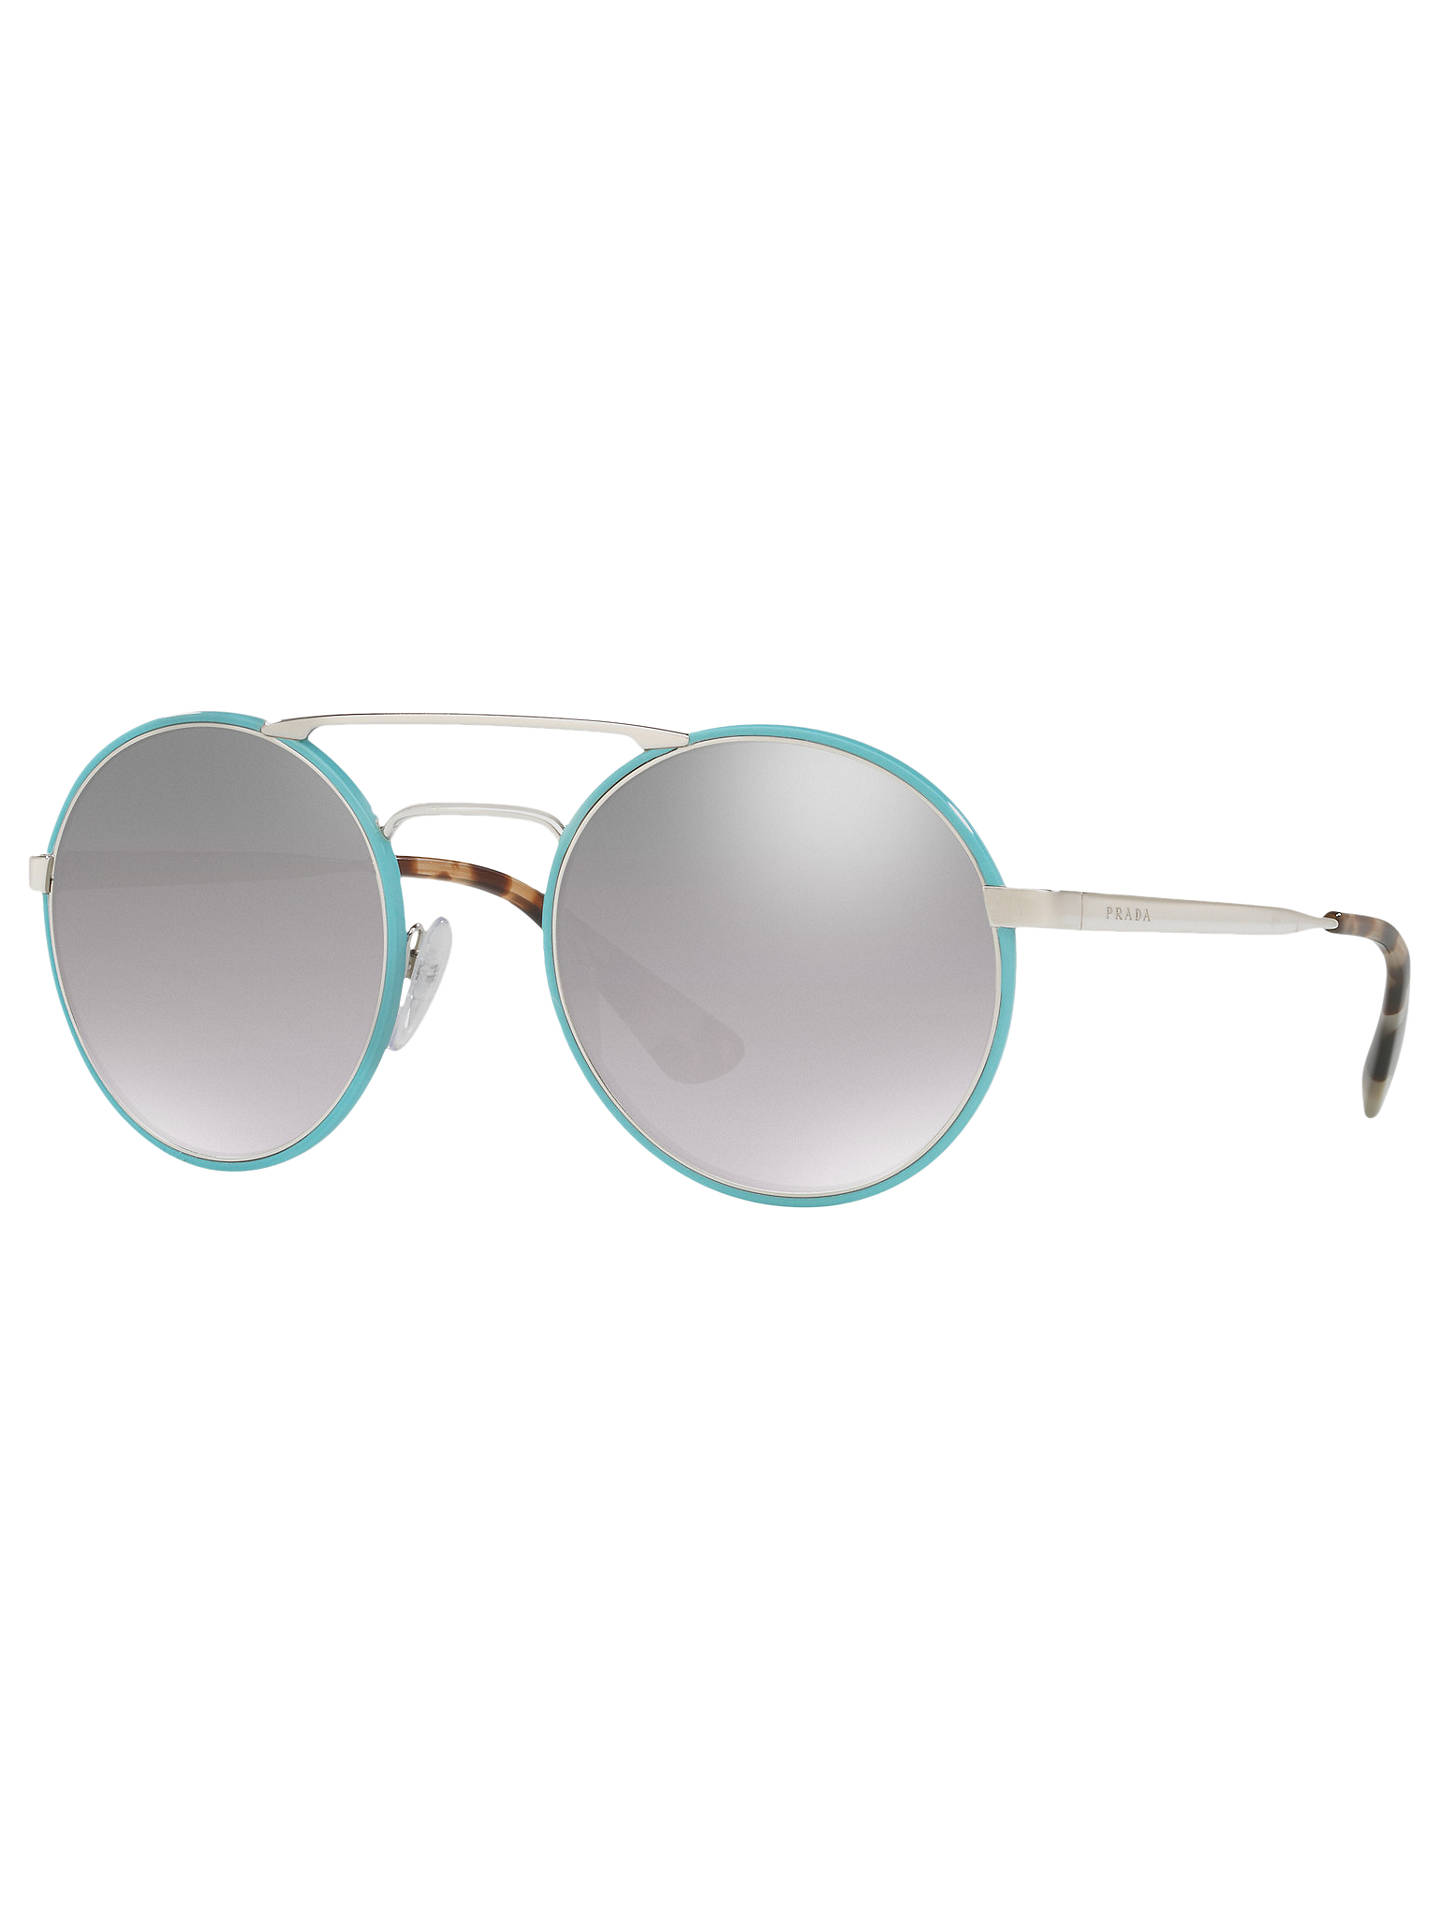 27f7a2093647 Buy Prada PR 51SS Round Sunglasses, Silver Turquoise/Mirror Grey Online at  johnlewis.